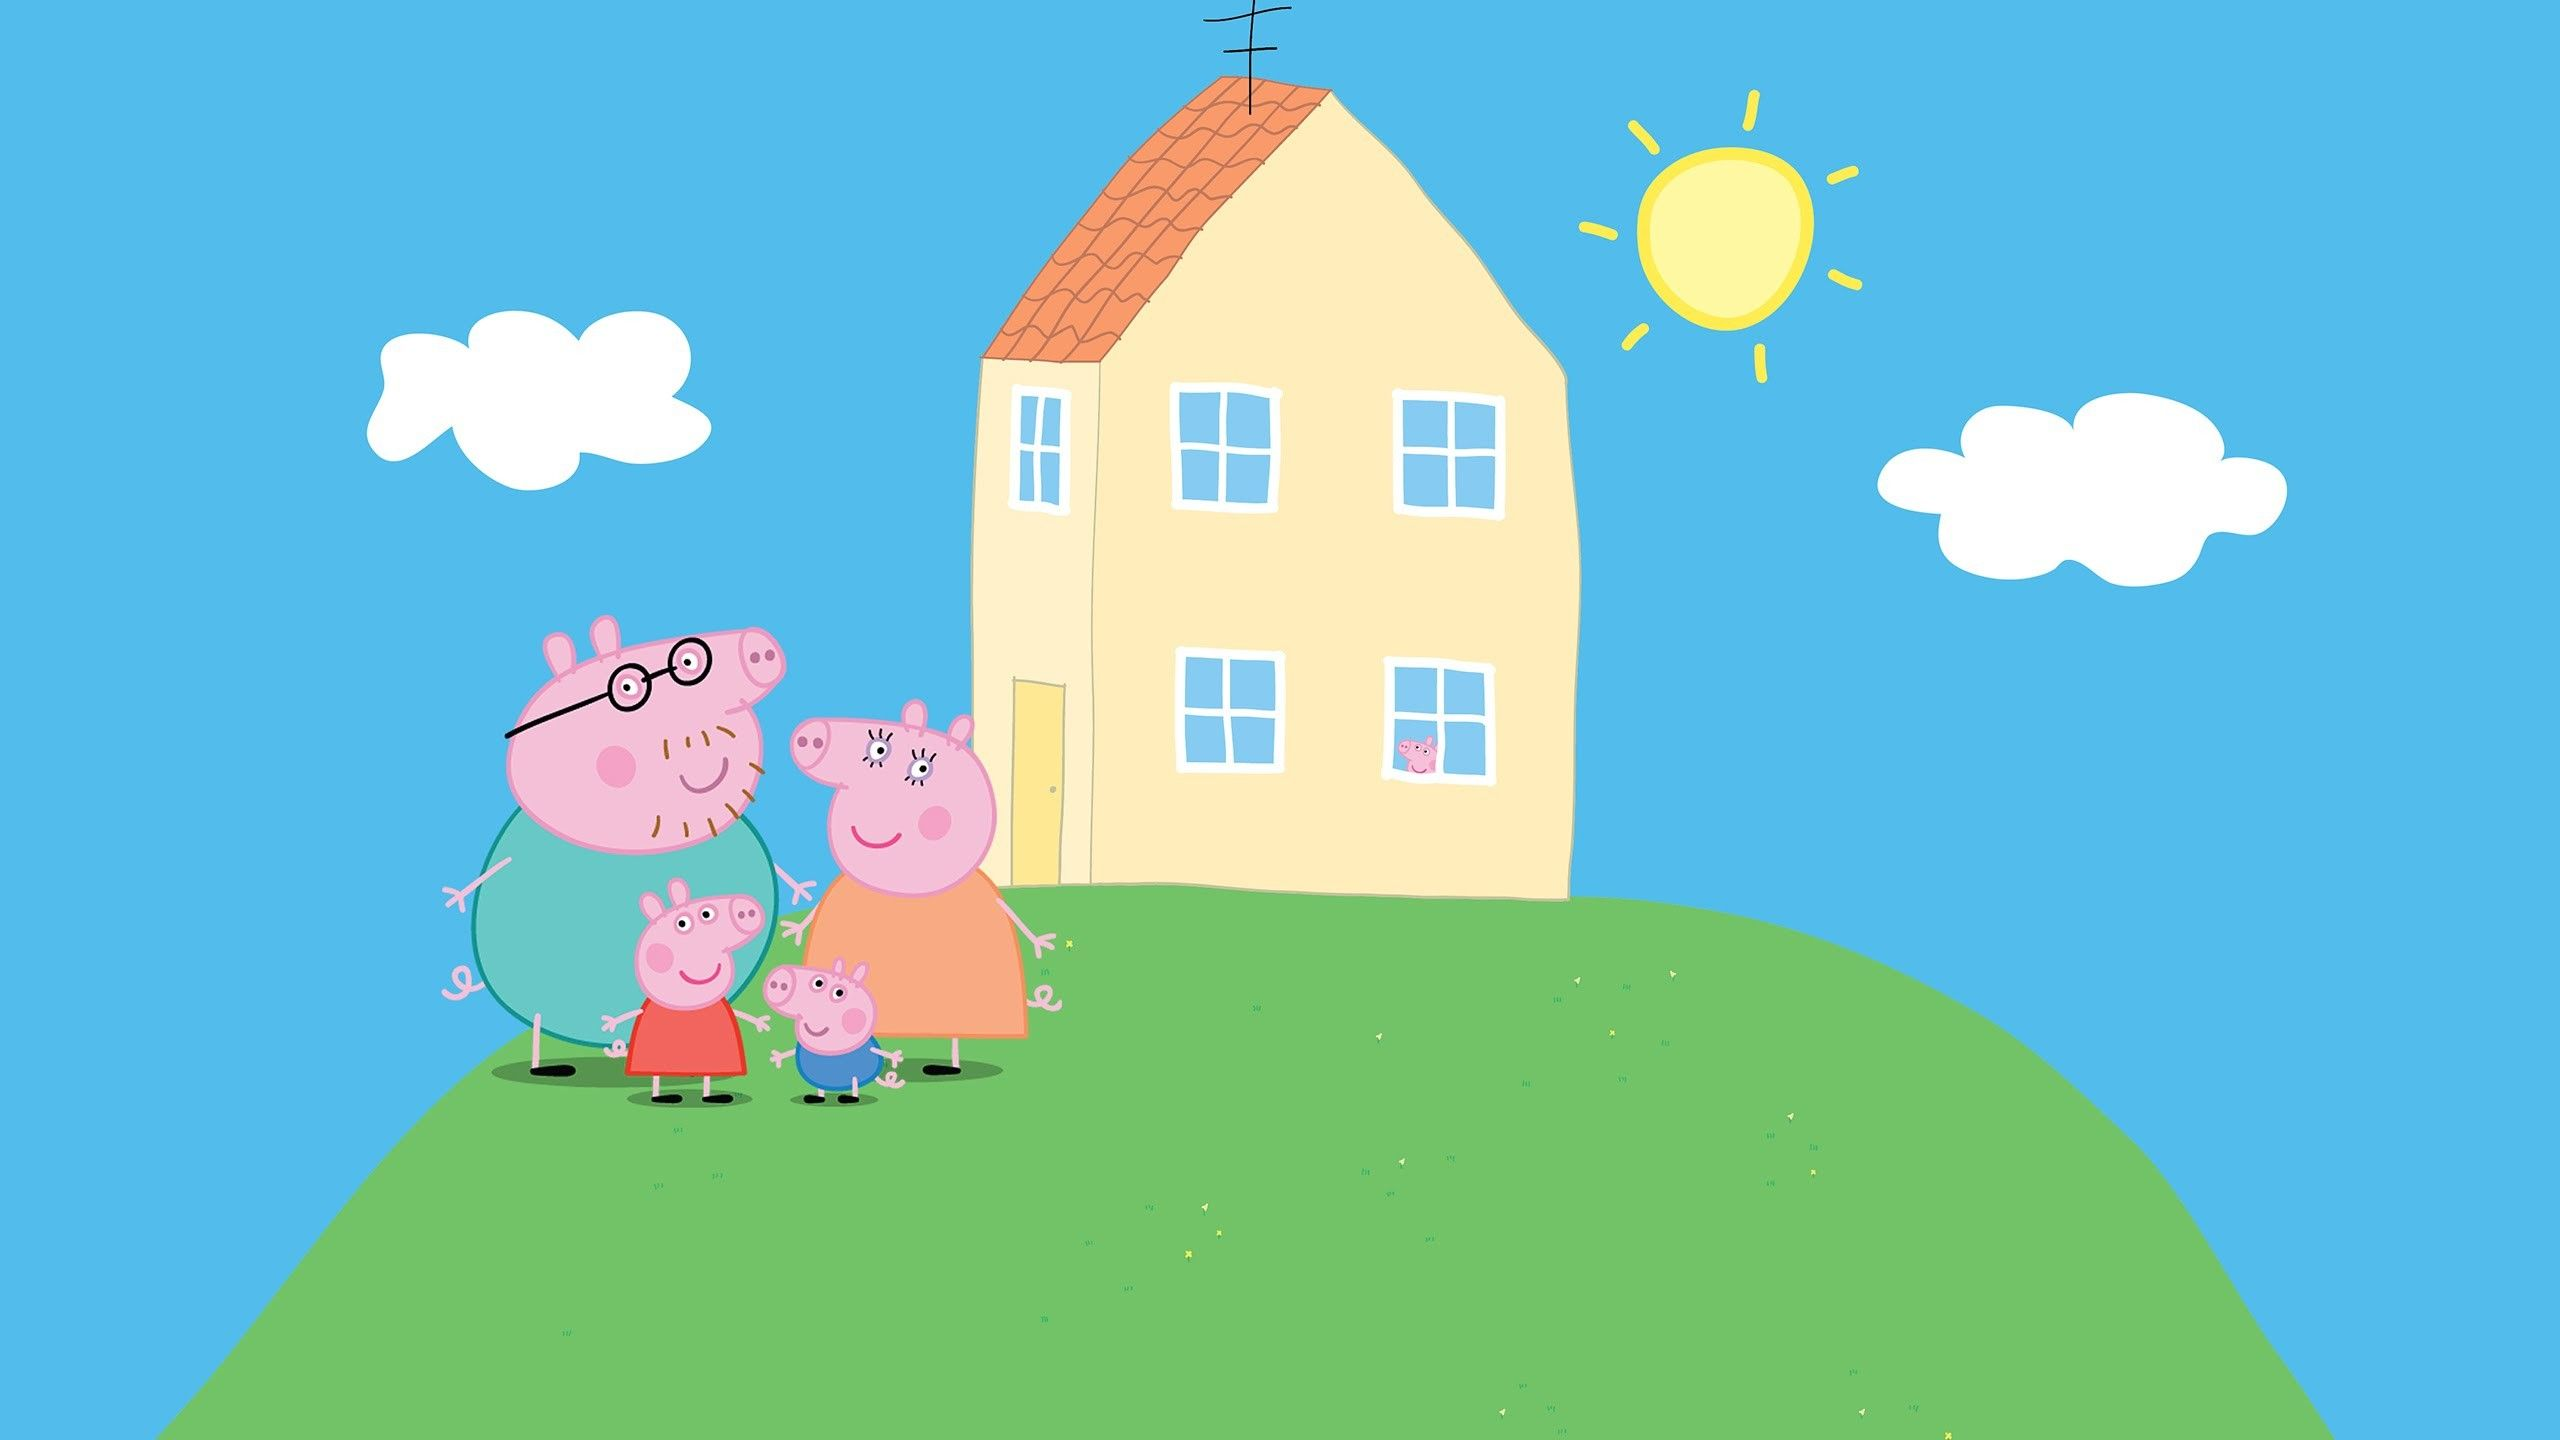 Peppa Pig House Wallpapers.